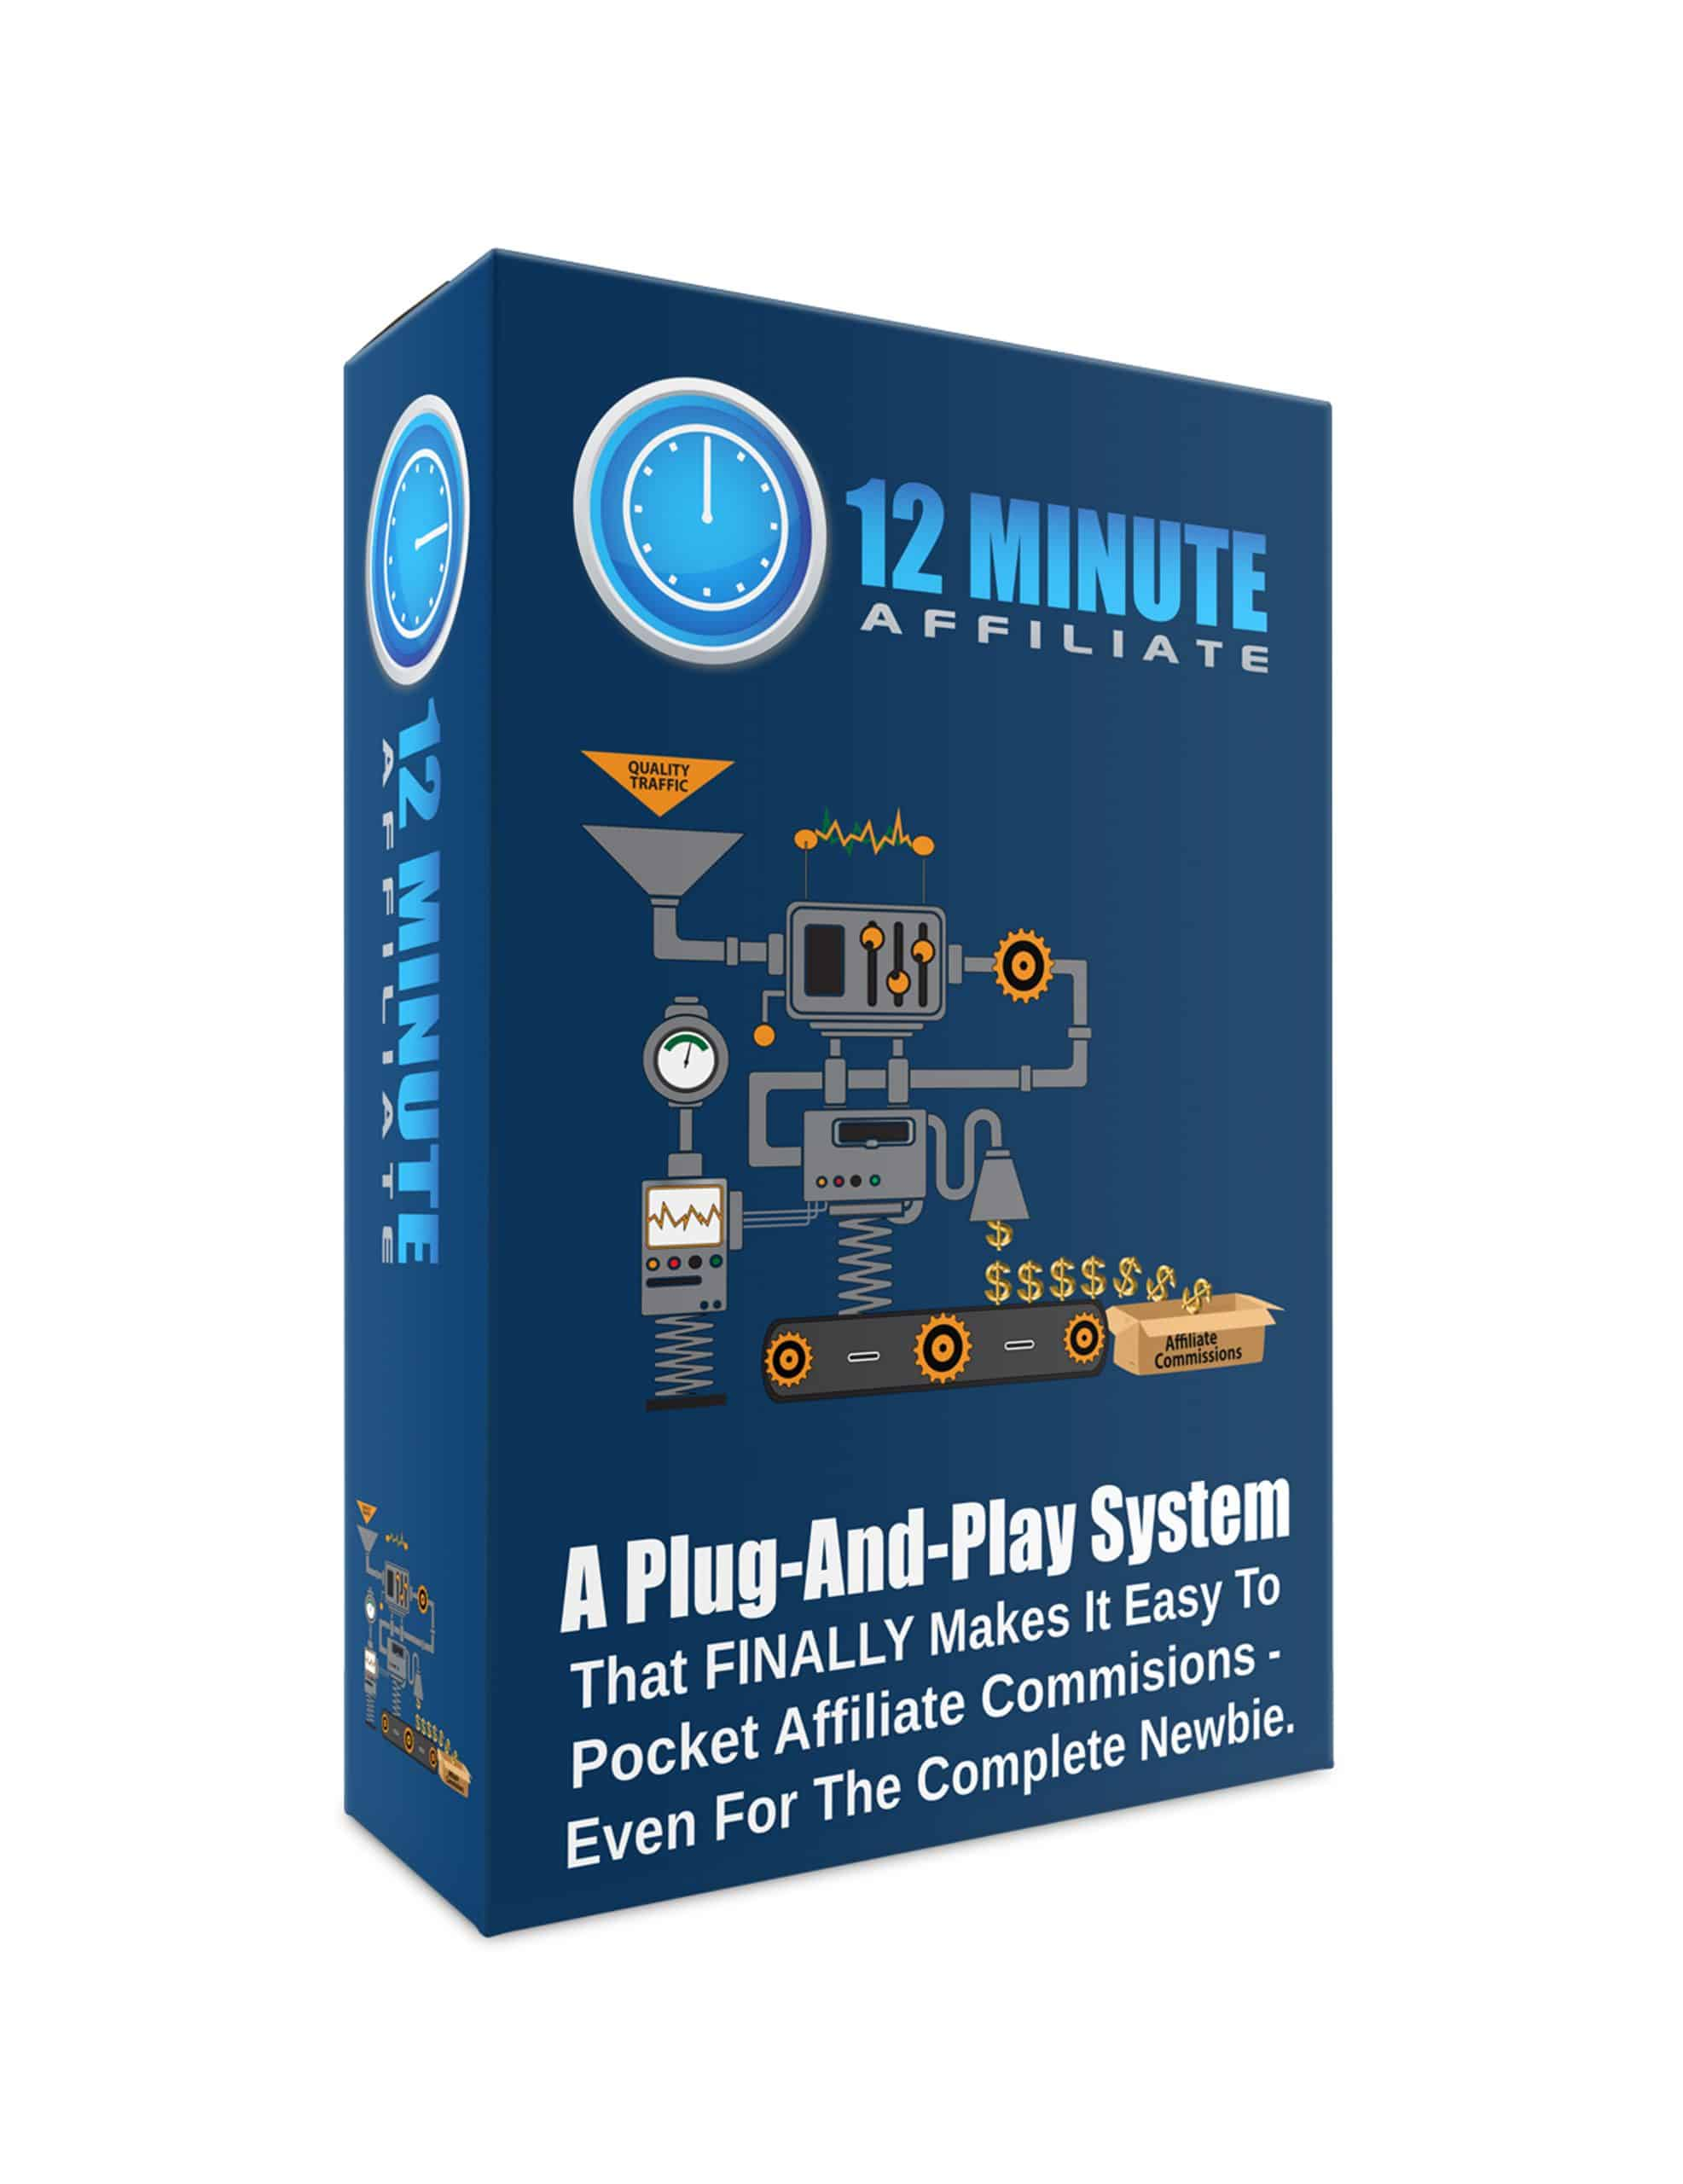 12-Minute-Affiliate-review-2020